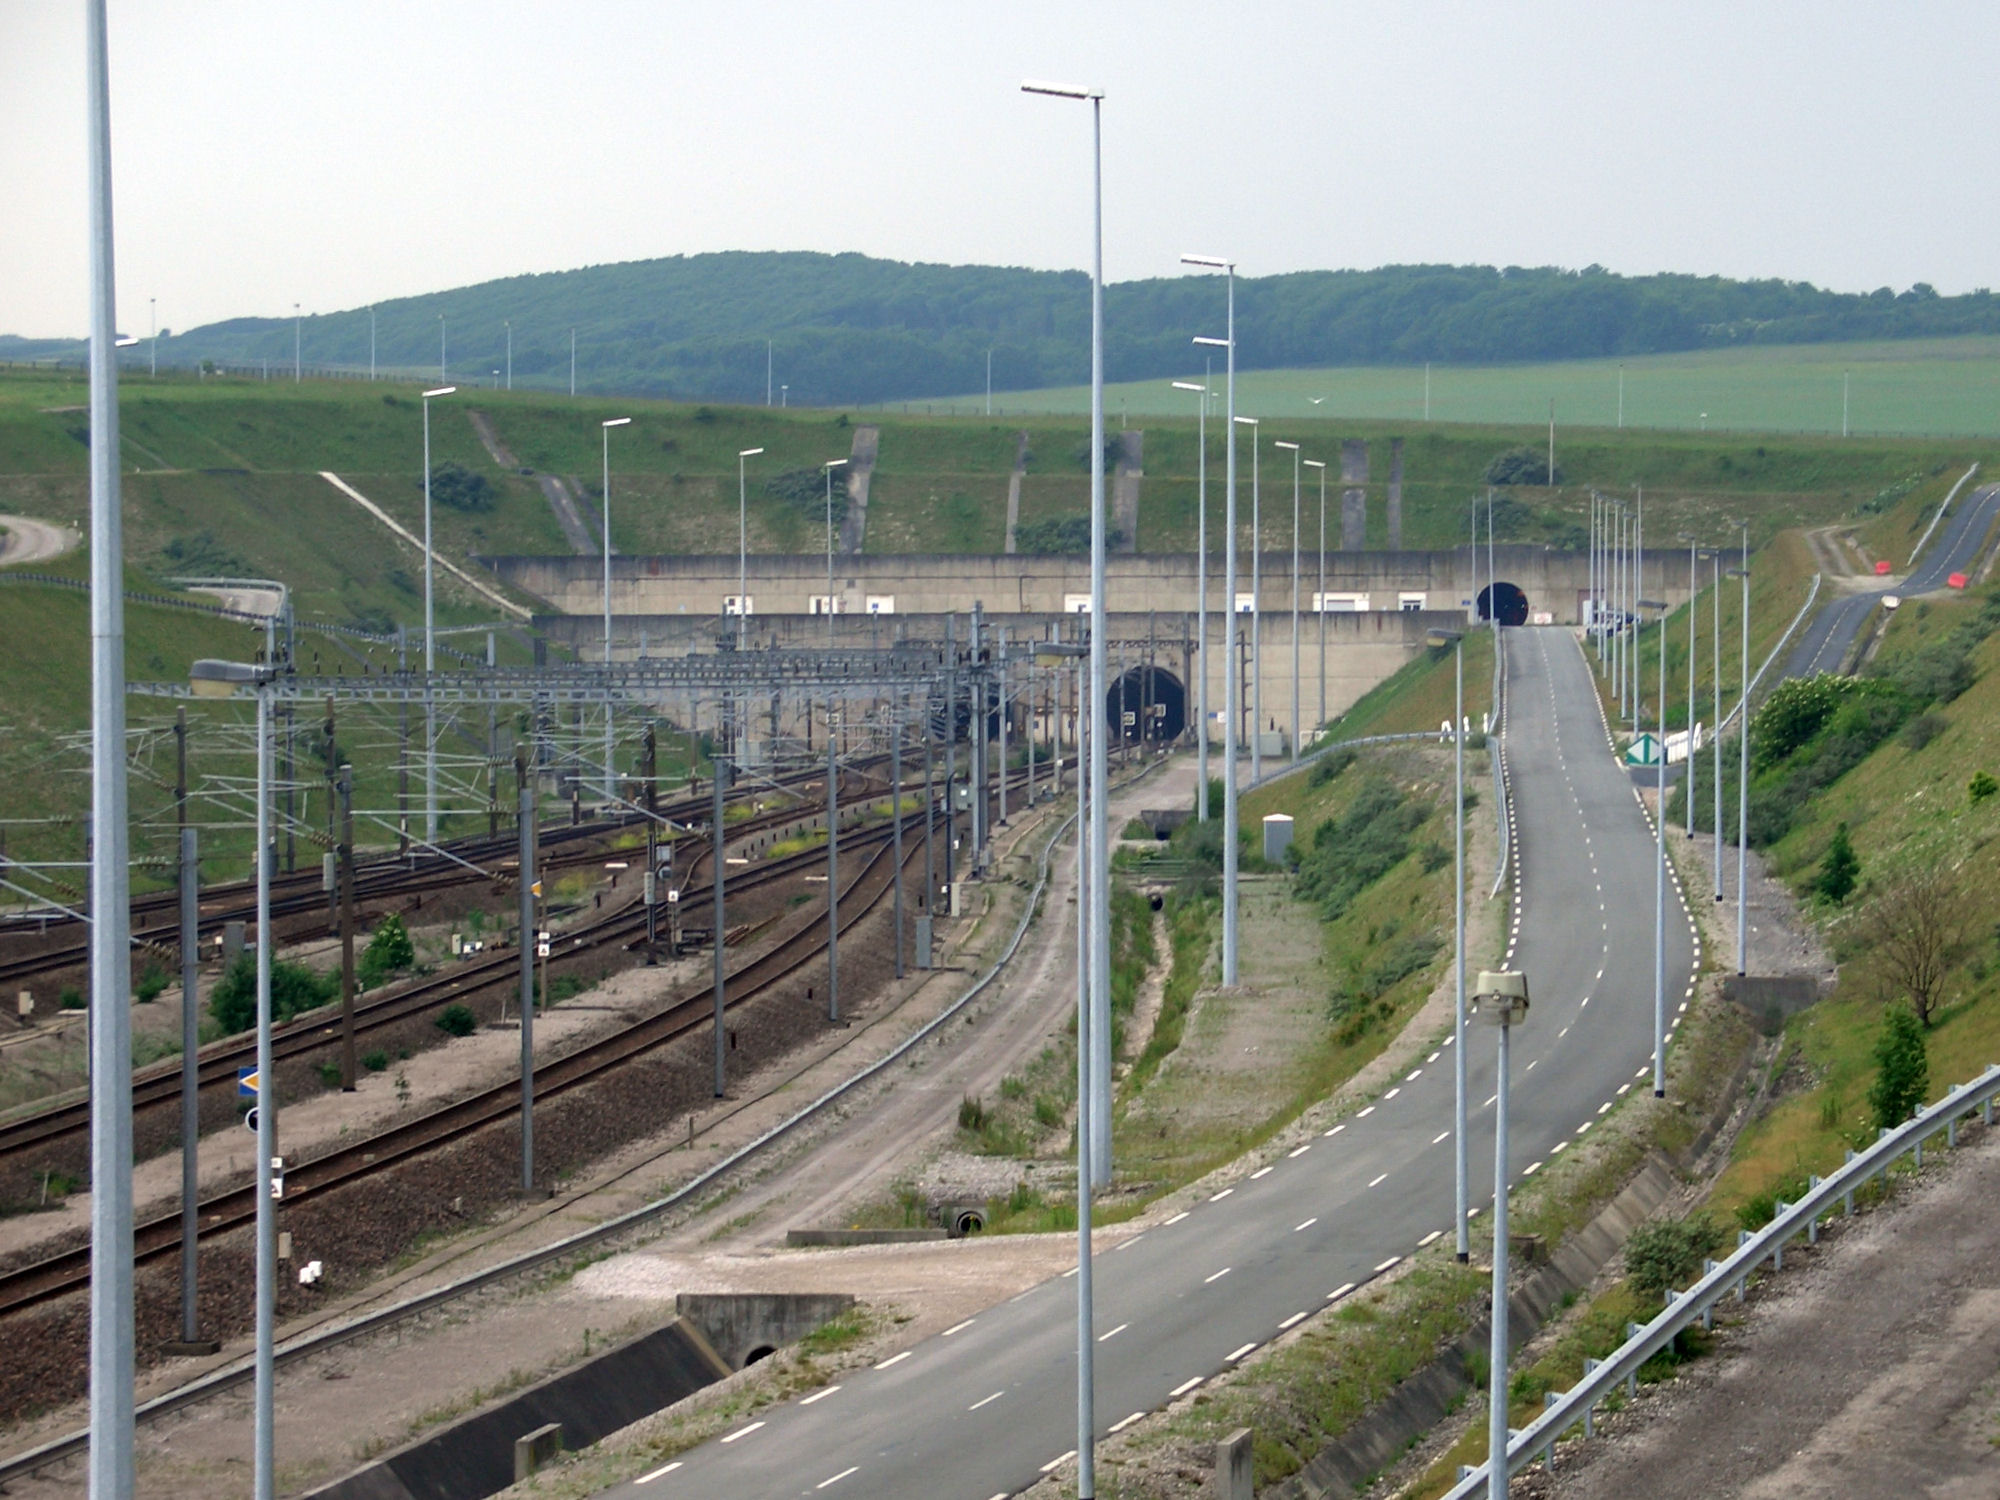 Coquelles France  city pictures gallery : Eurotunnel Coquelles 2008 Wikipedia, the free encyclopedia